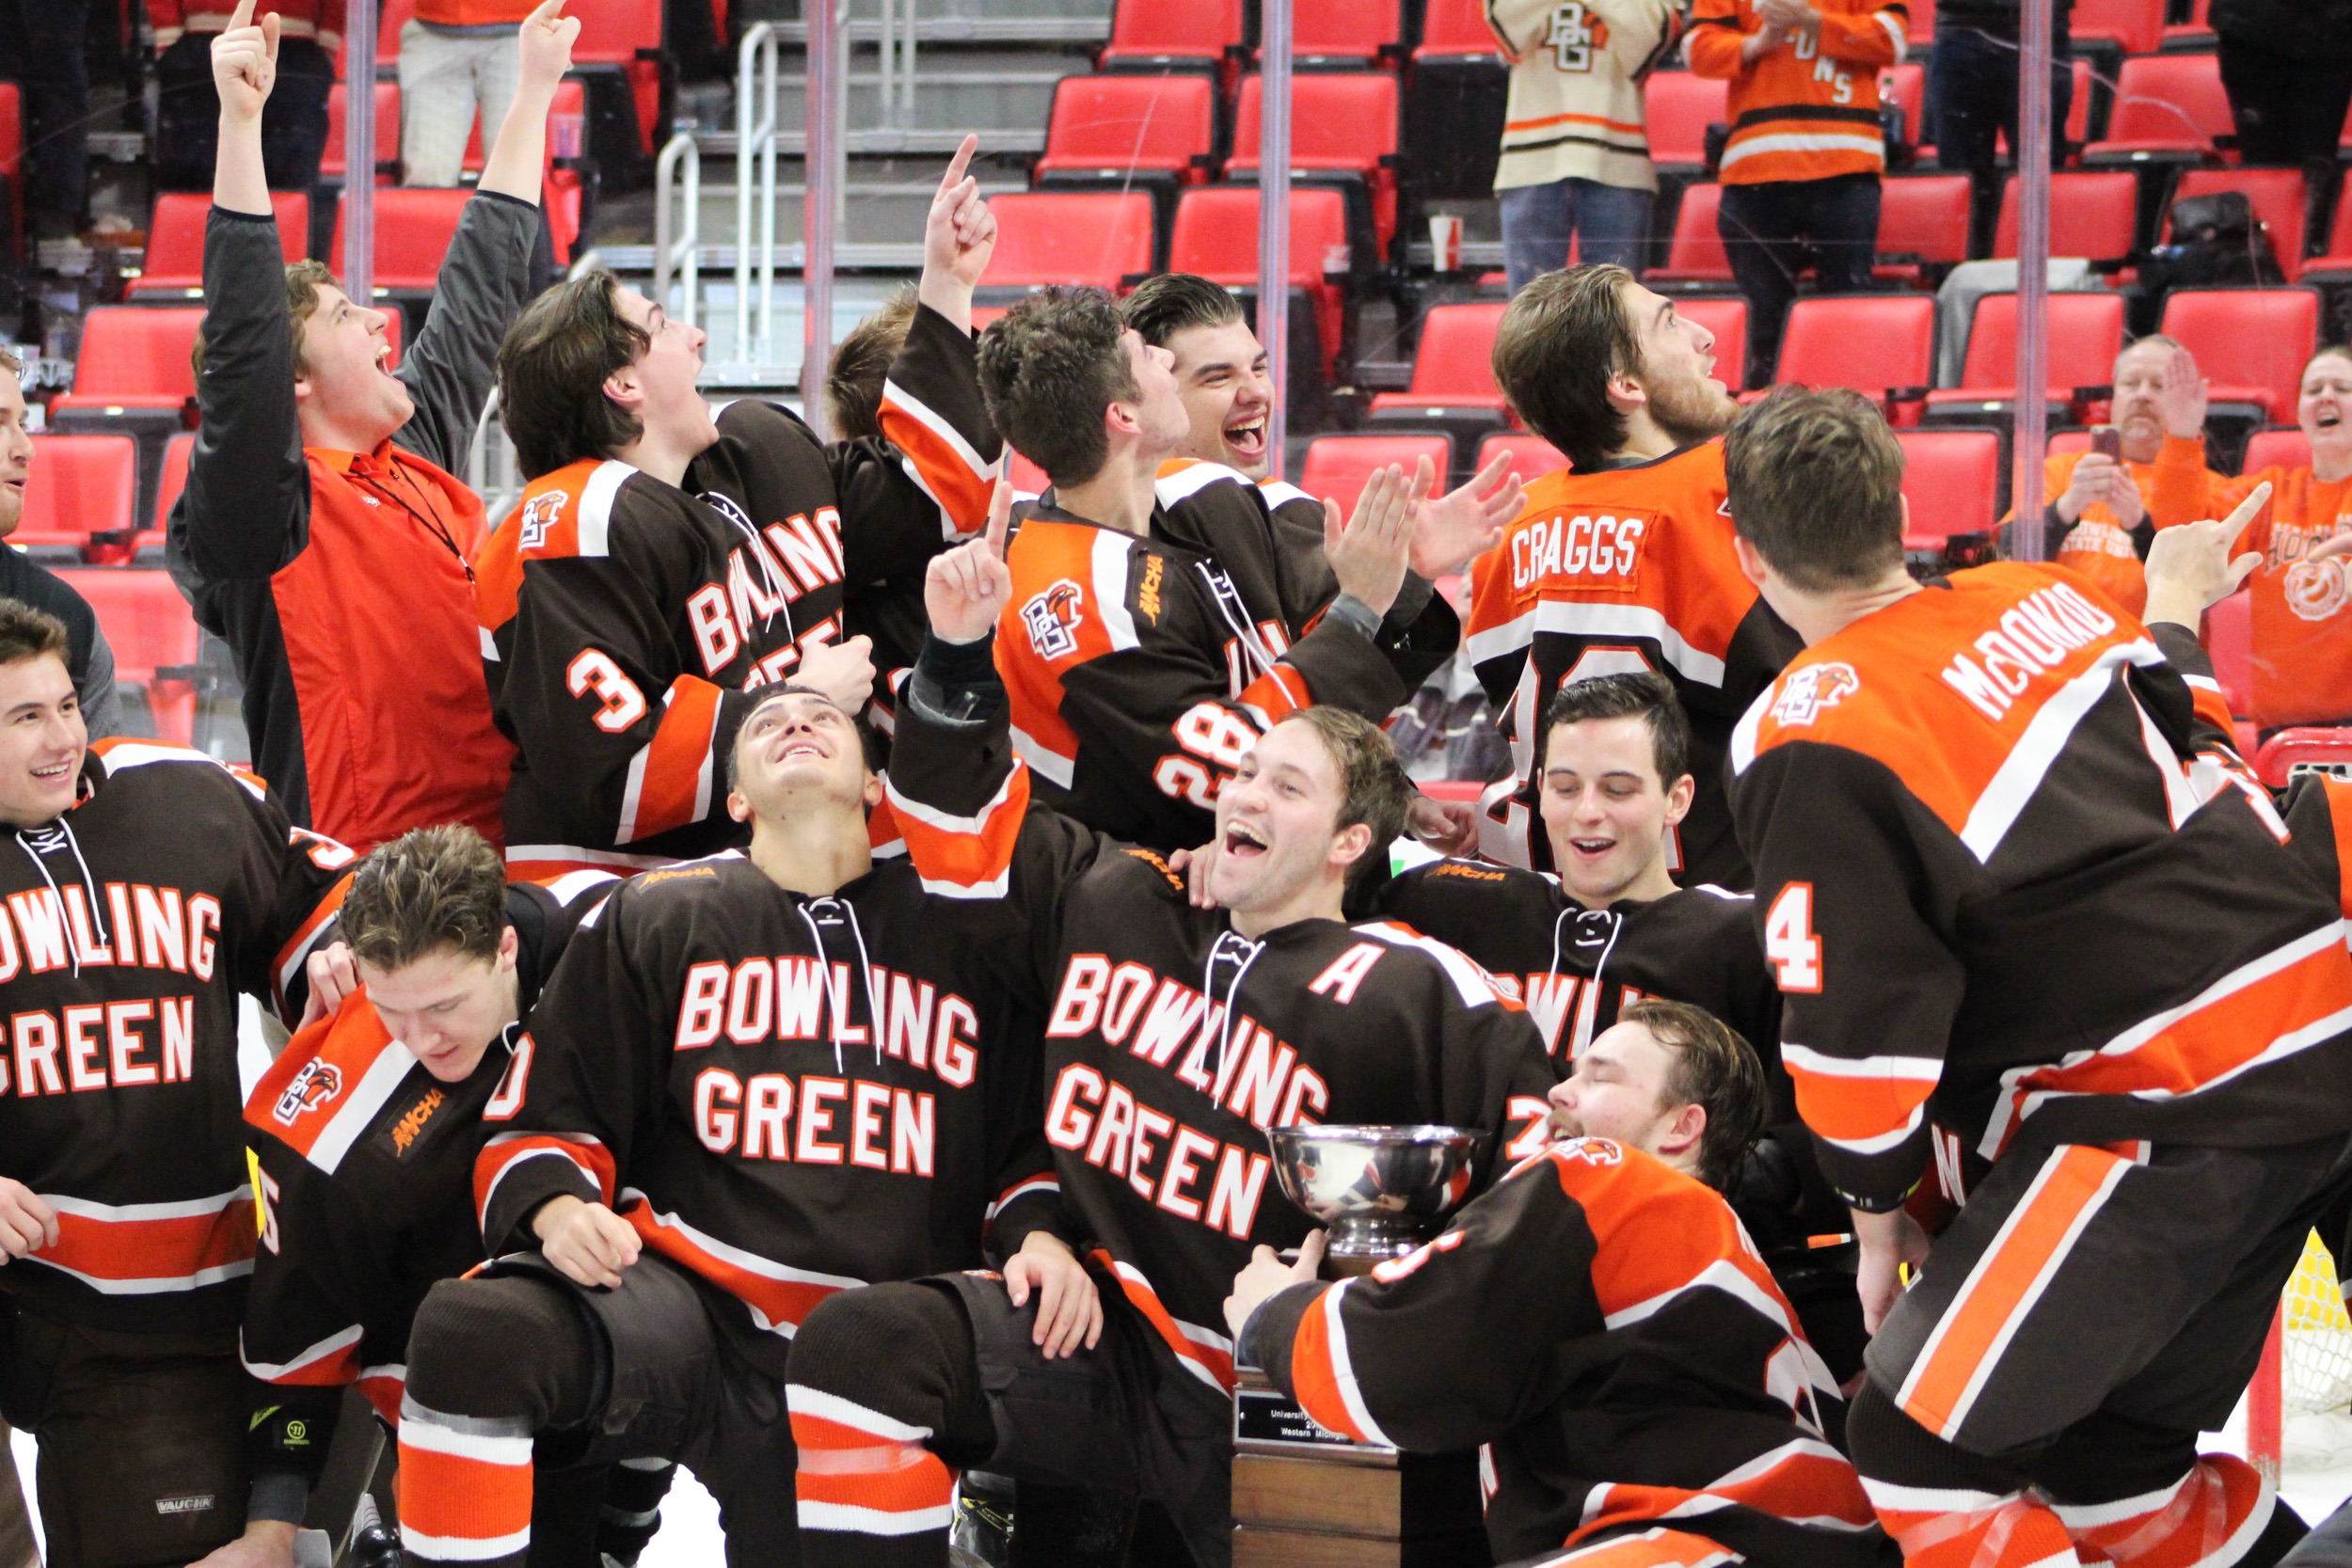 Falcons hoist hardware in Hockey Town